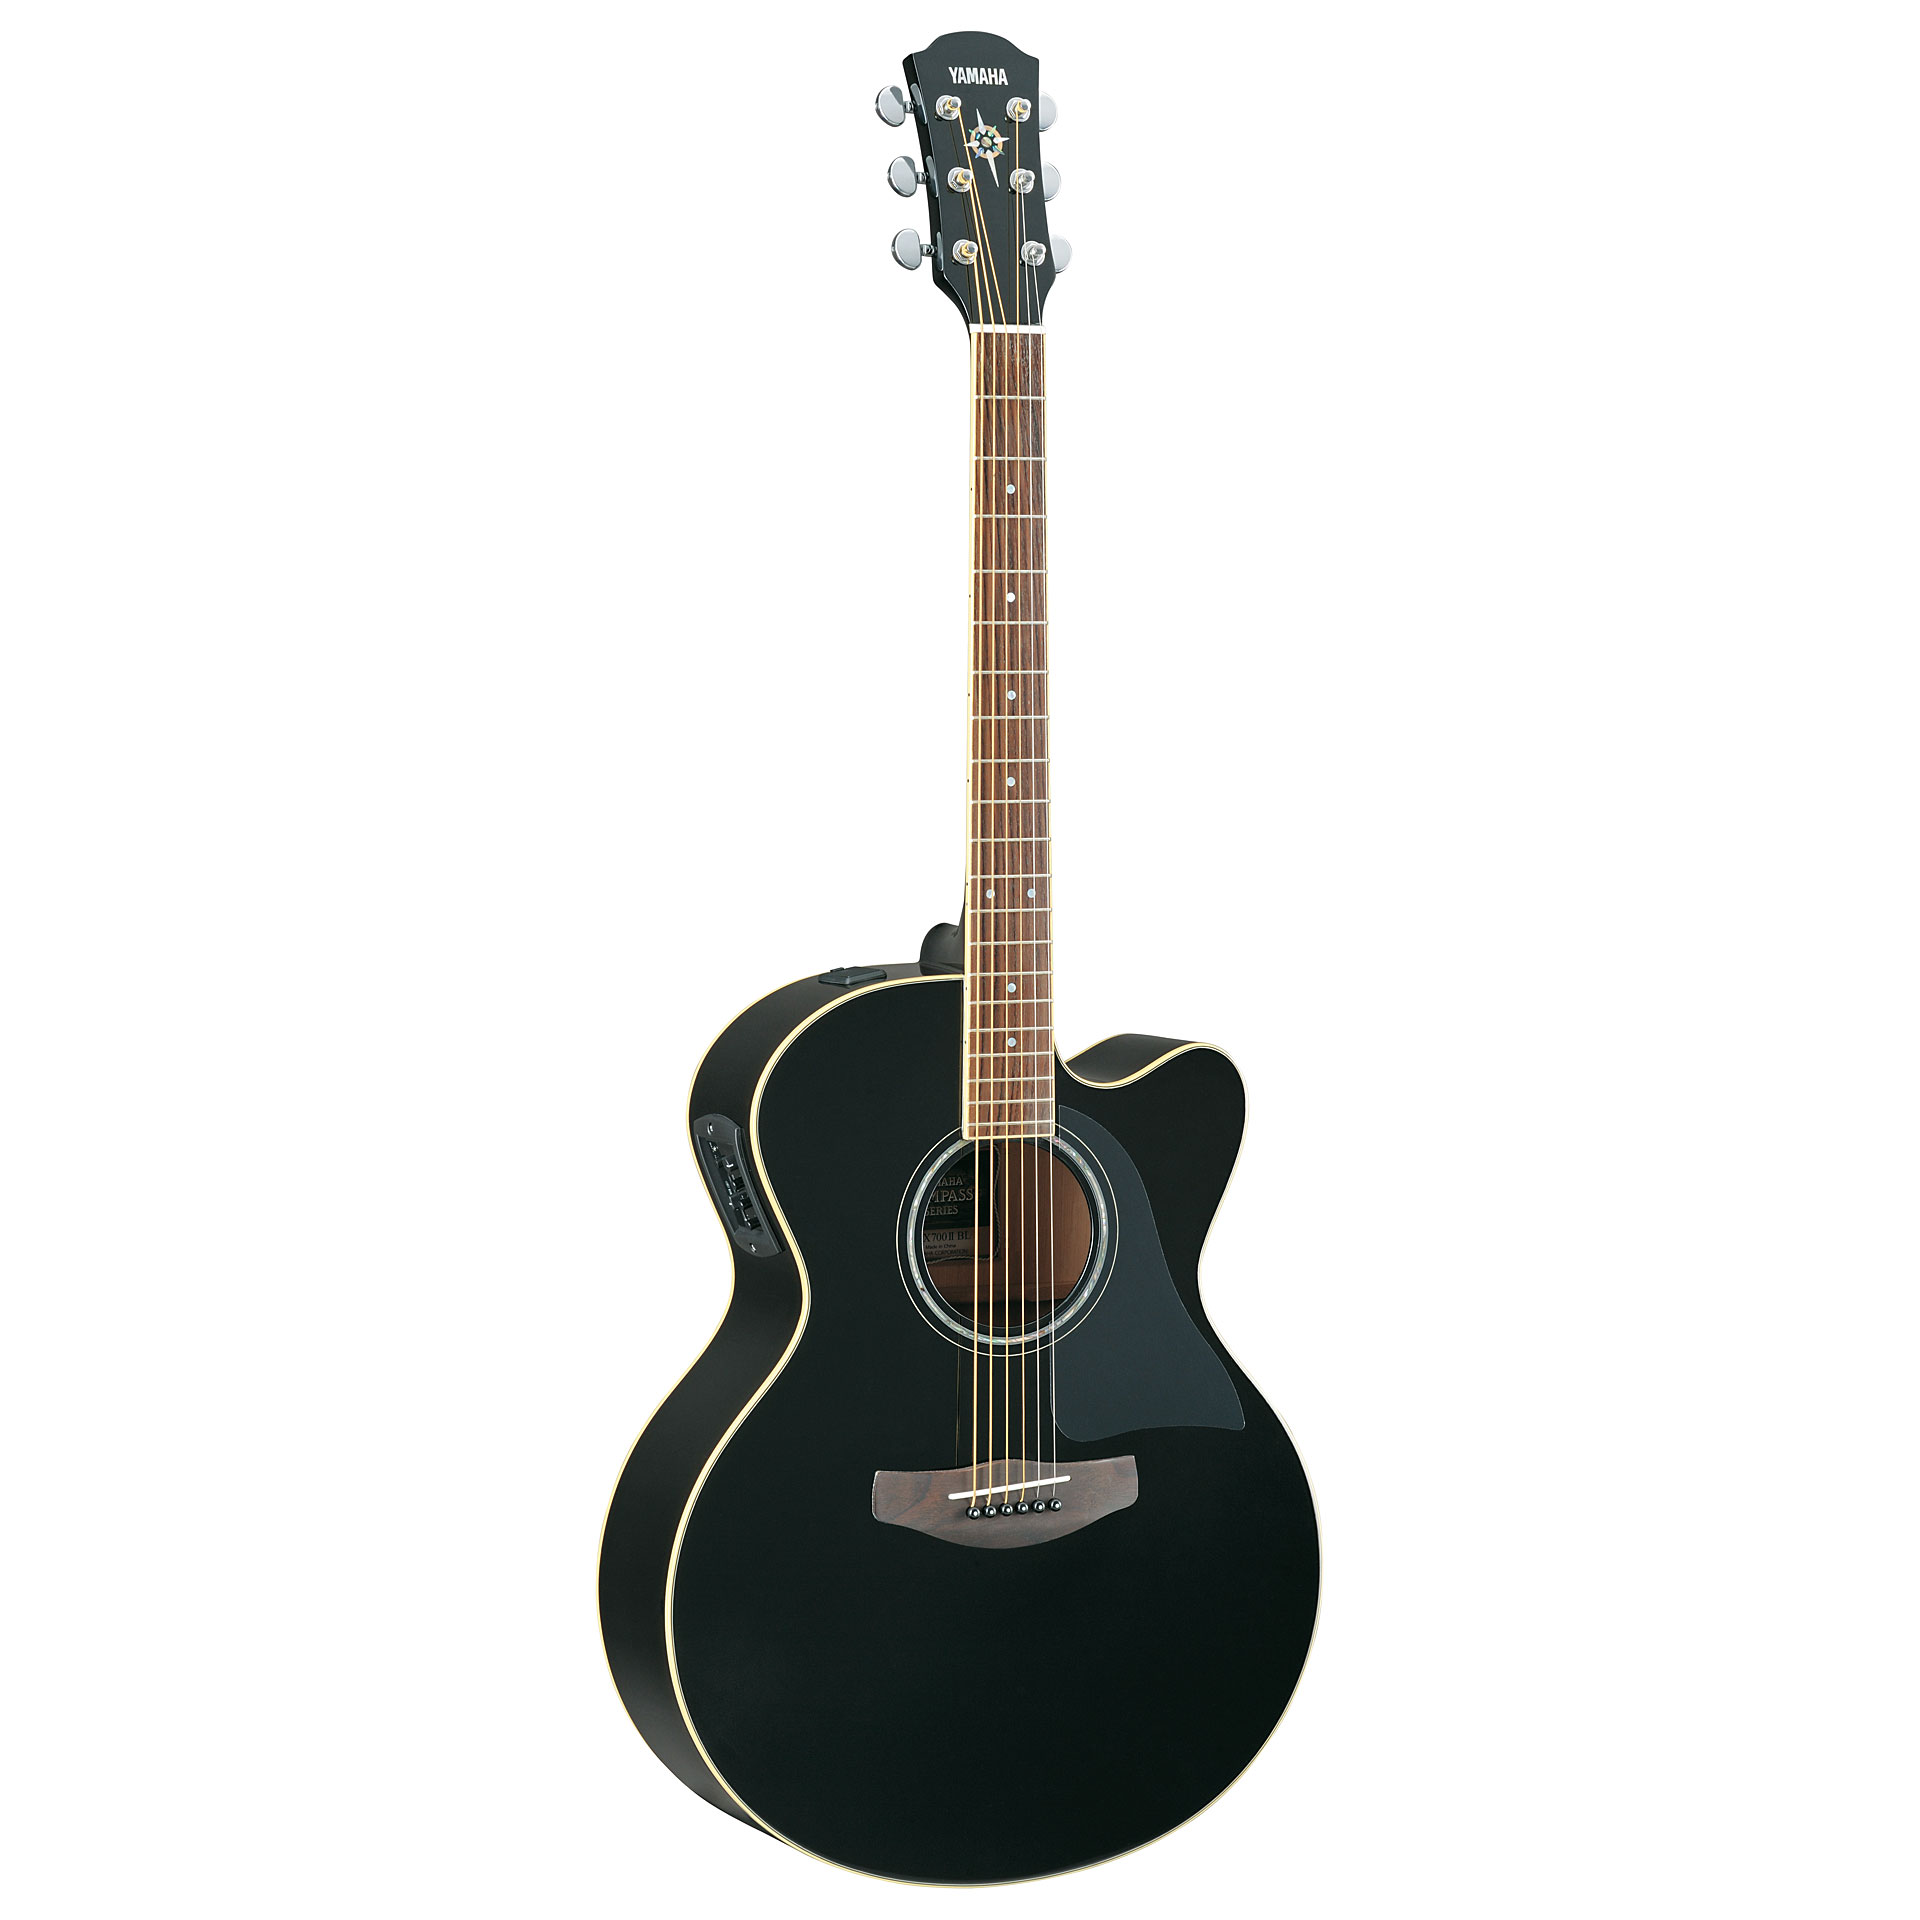 Yamaha cpx500iii bl acoustic guitar for New yamaha acoustic guitars